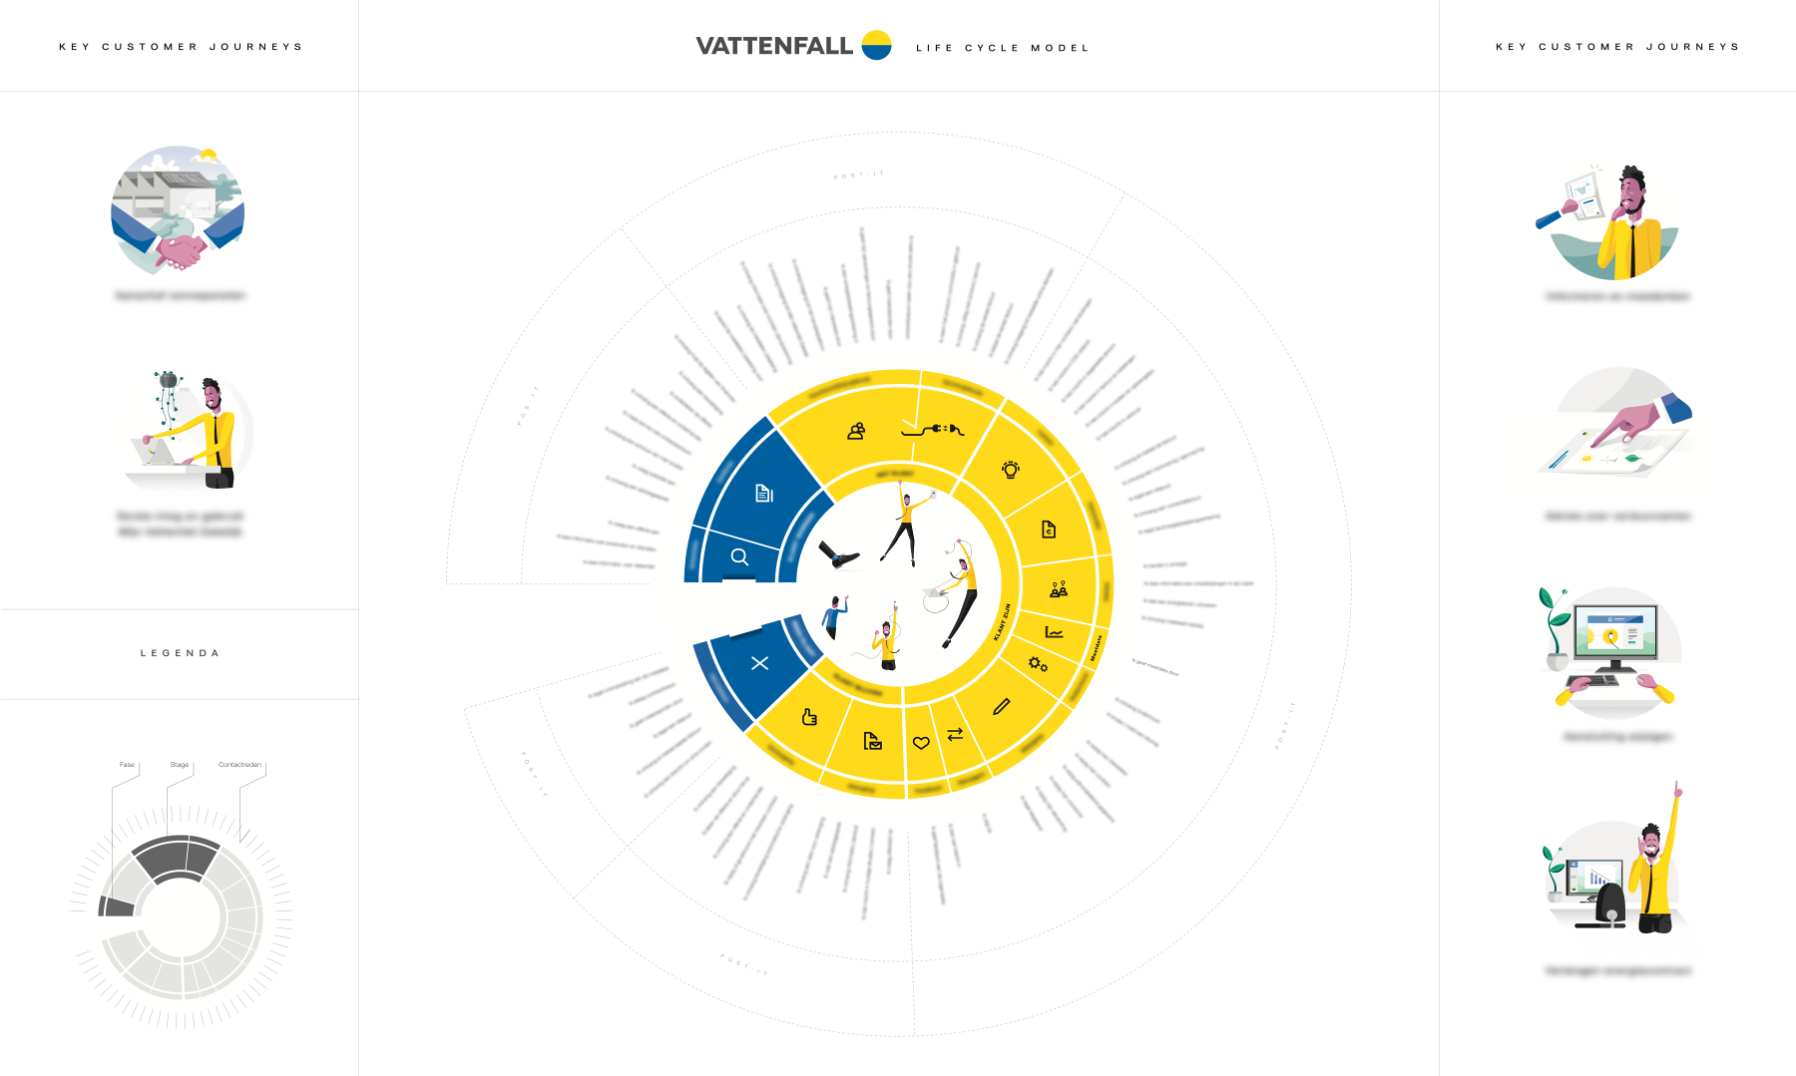 Vattenfall CX Life Cycle Model